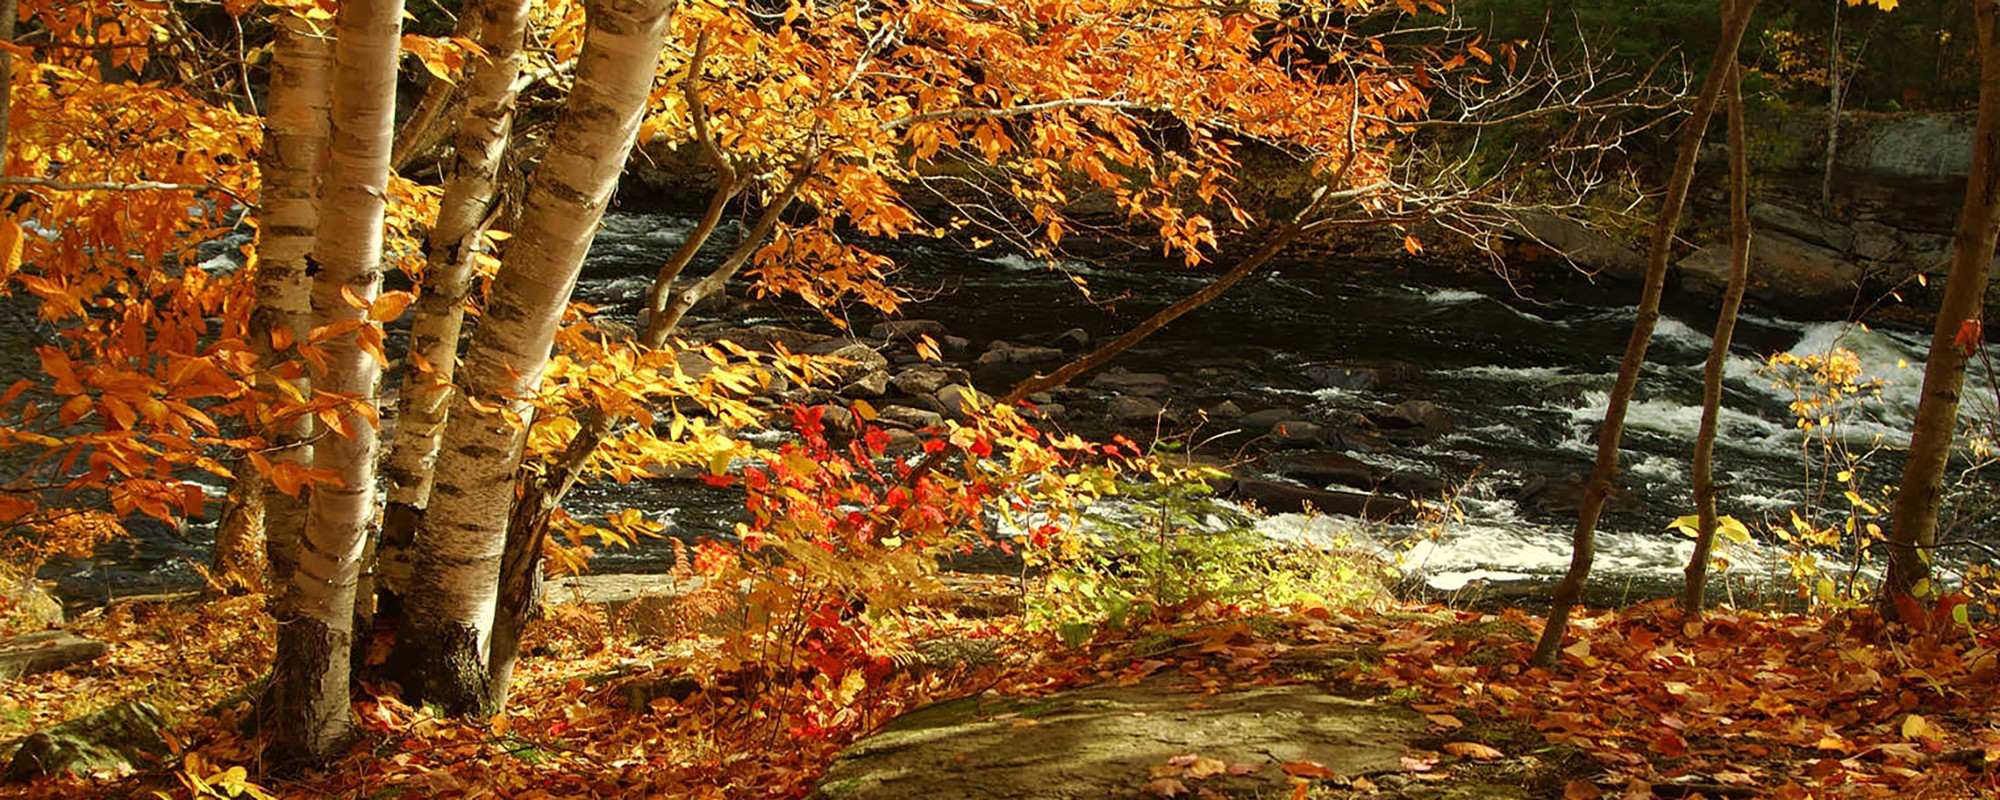 fall leaves and mold allergies